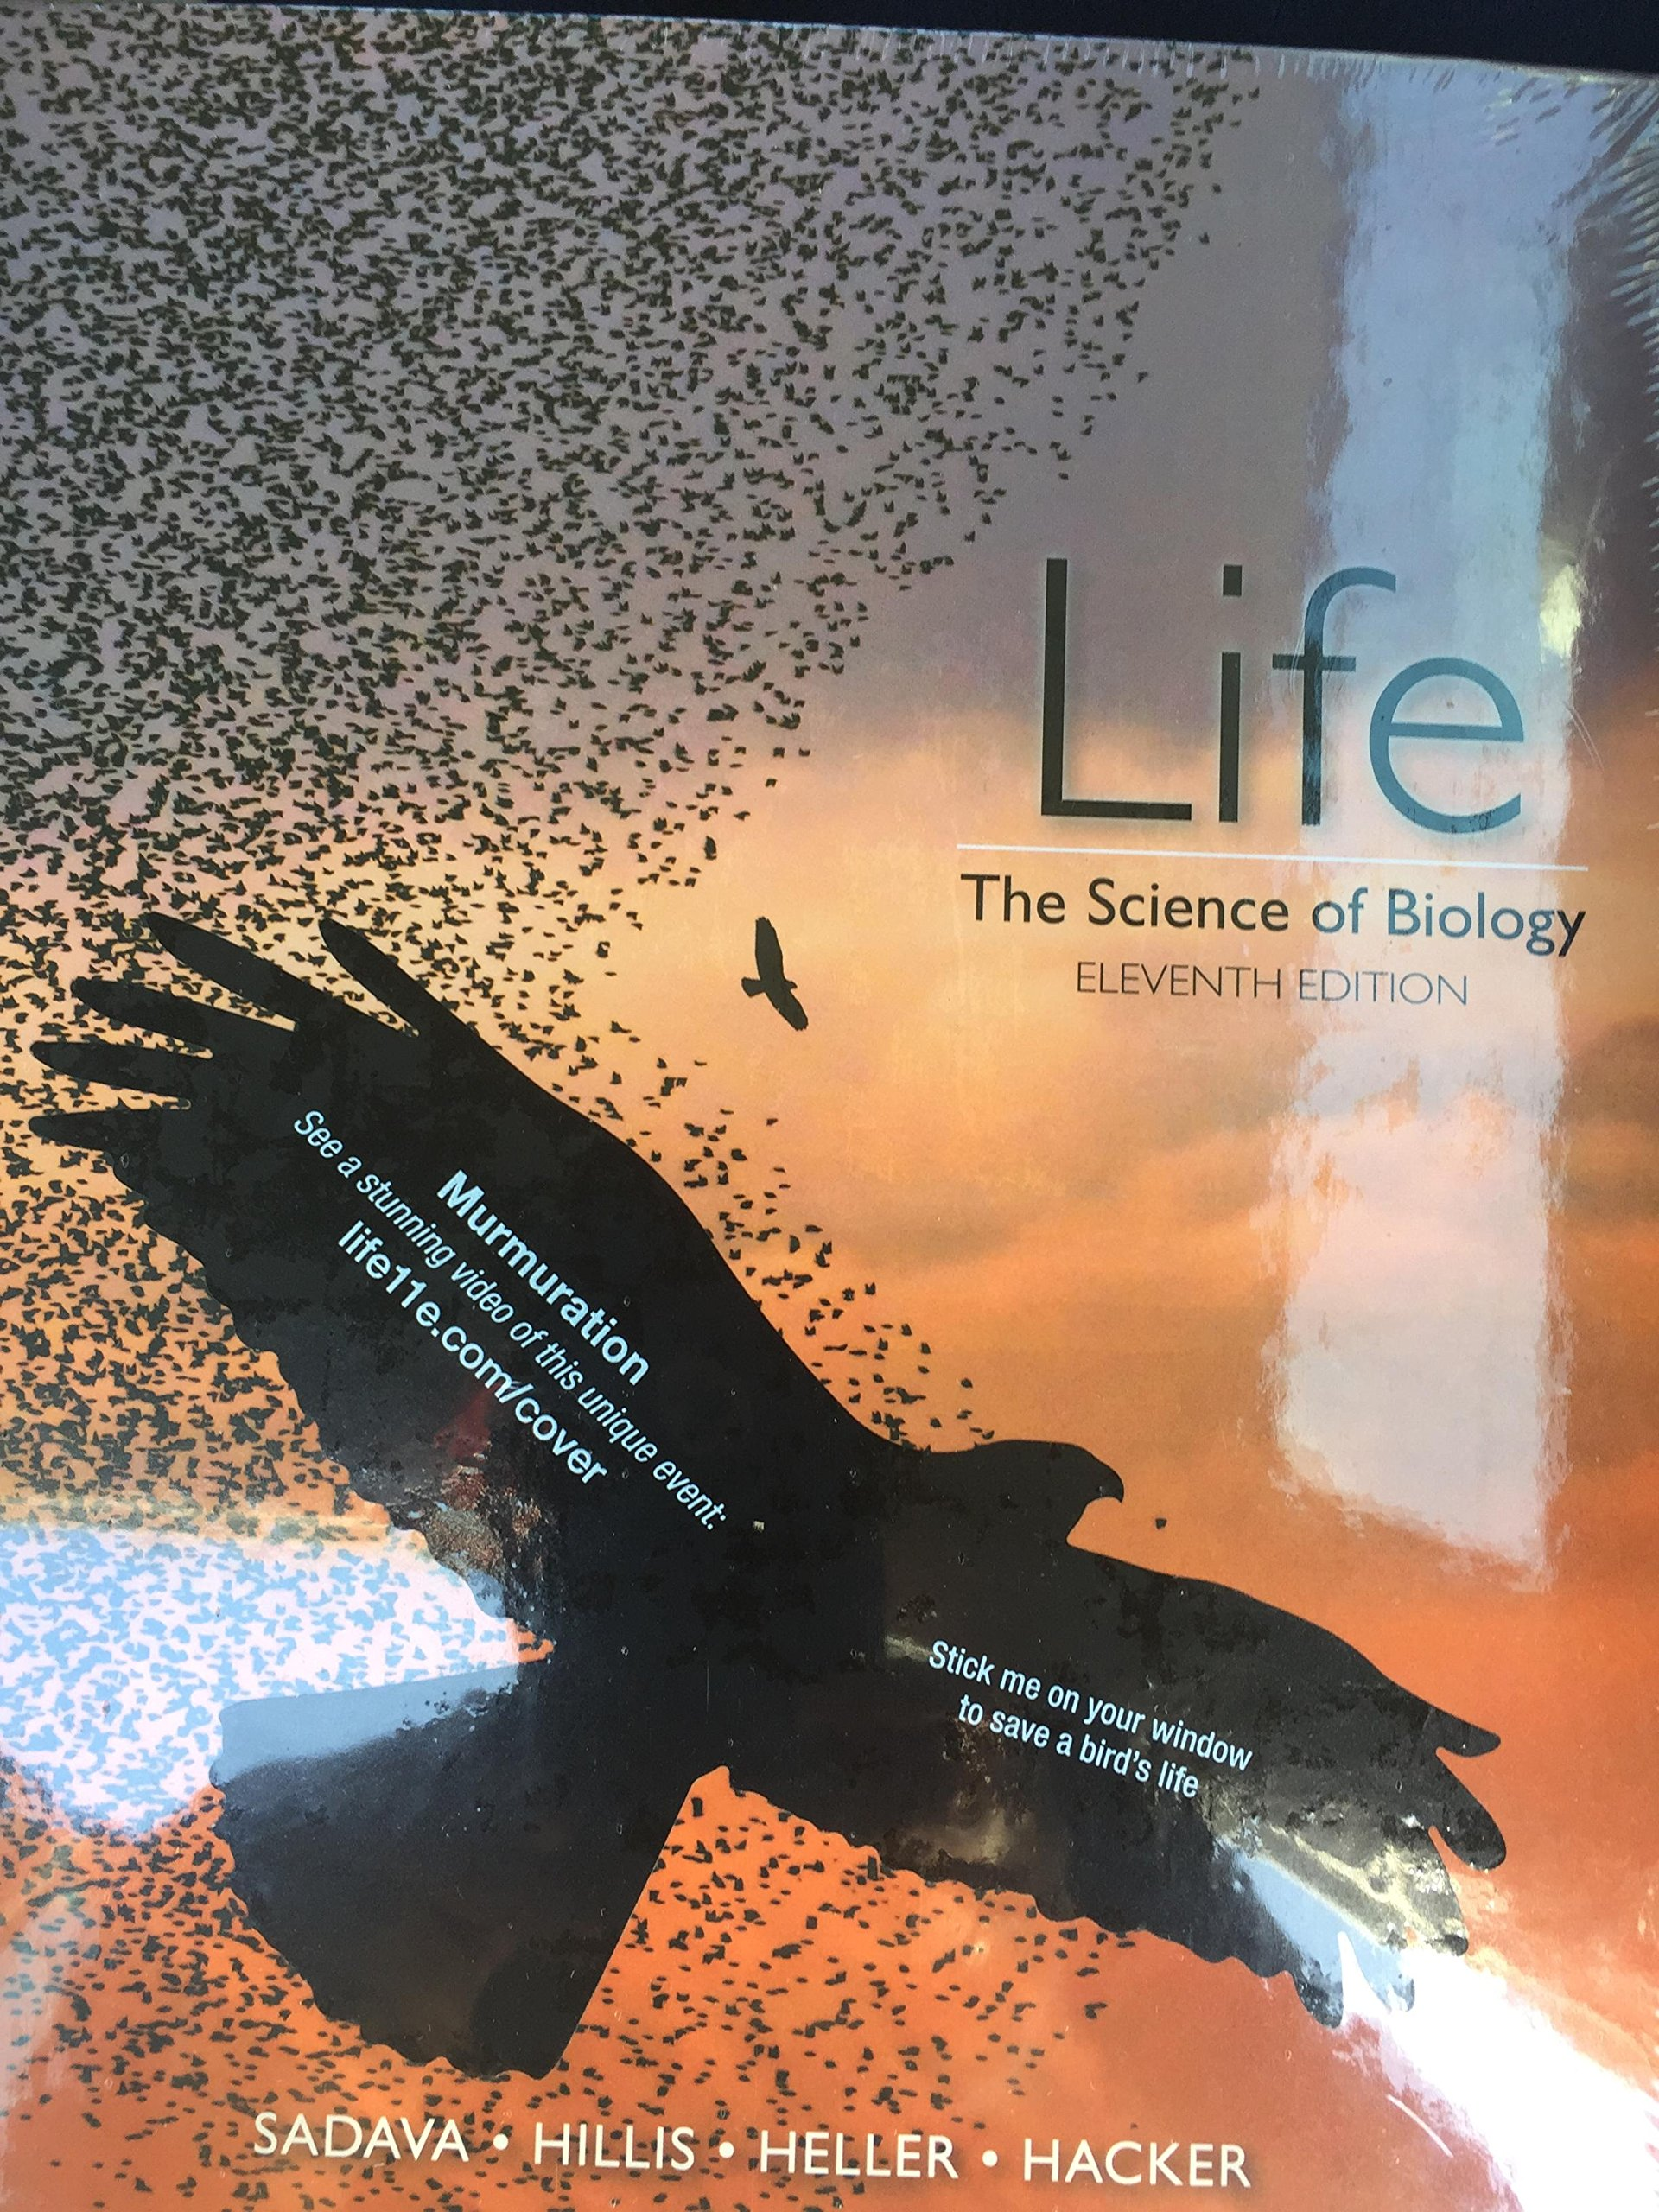 Life the science of biology 11th edition pdf dolapgnetband life the science of biology 11th edition pdf fandeluxe Choice Image